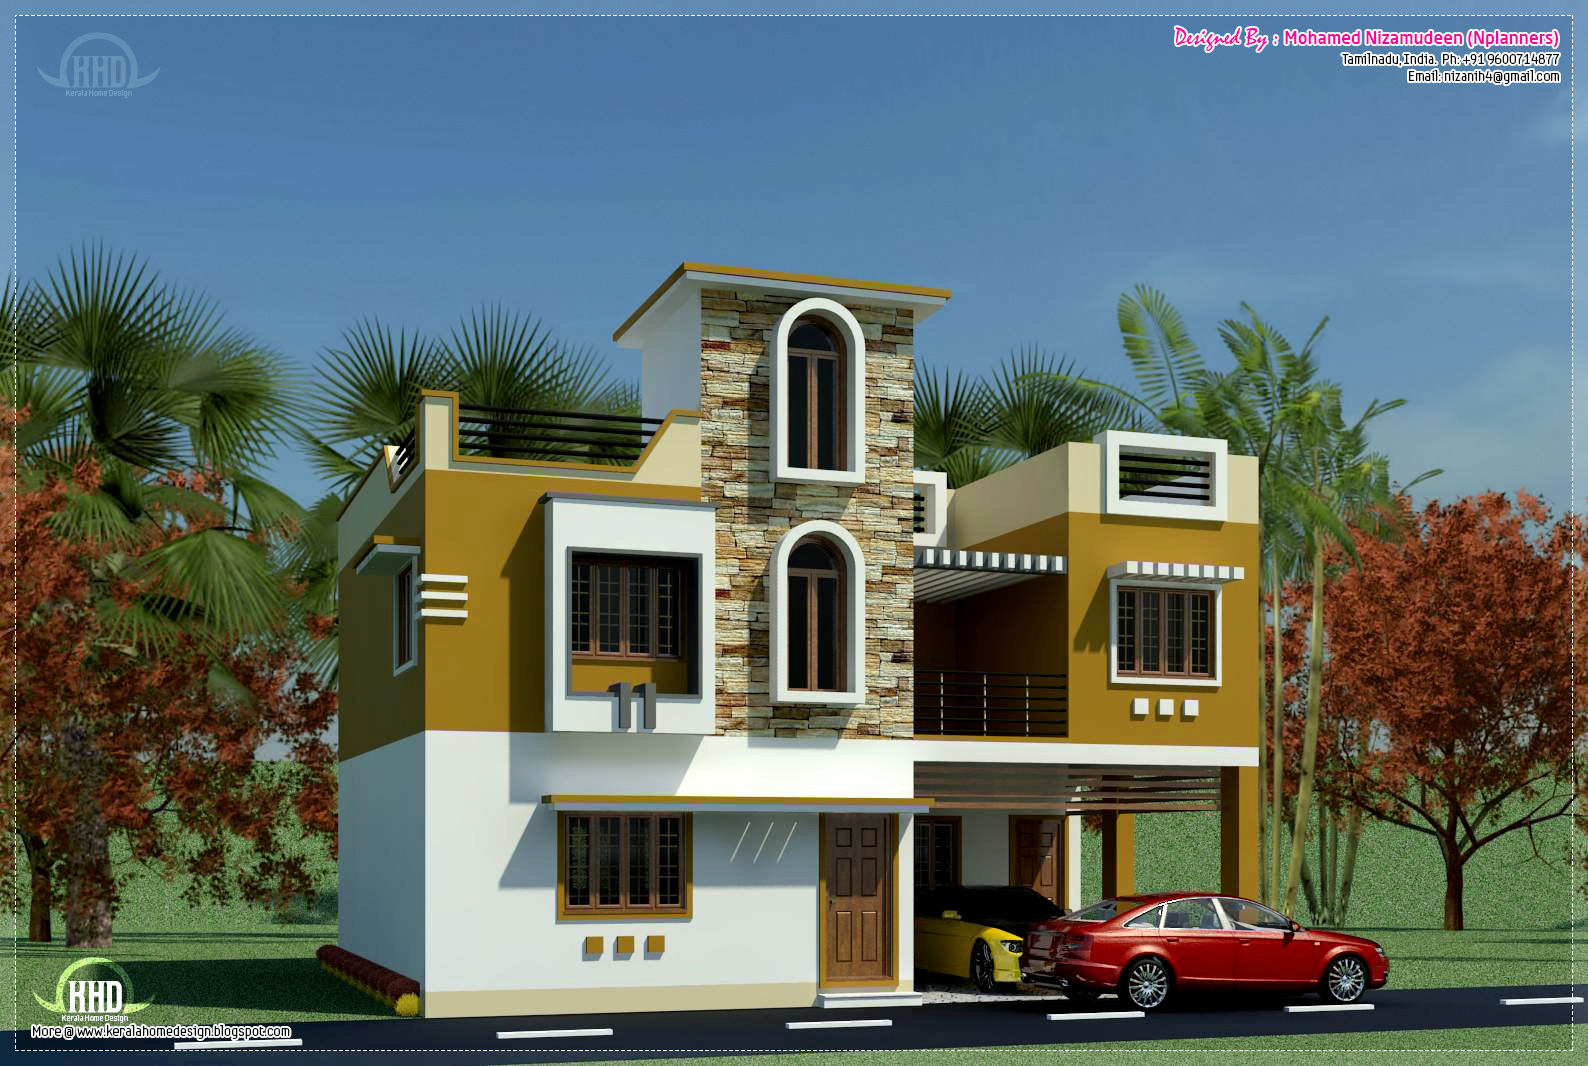 Siddu buzz online kerala home design for Tamilnadu house designs photos